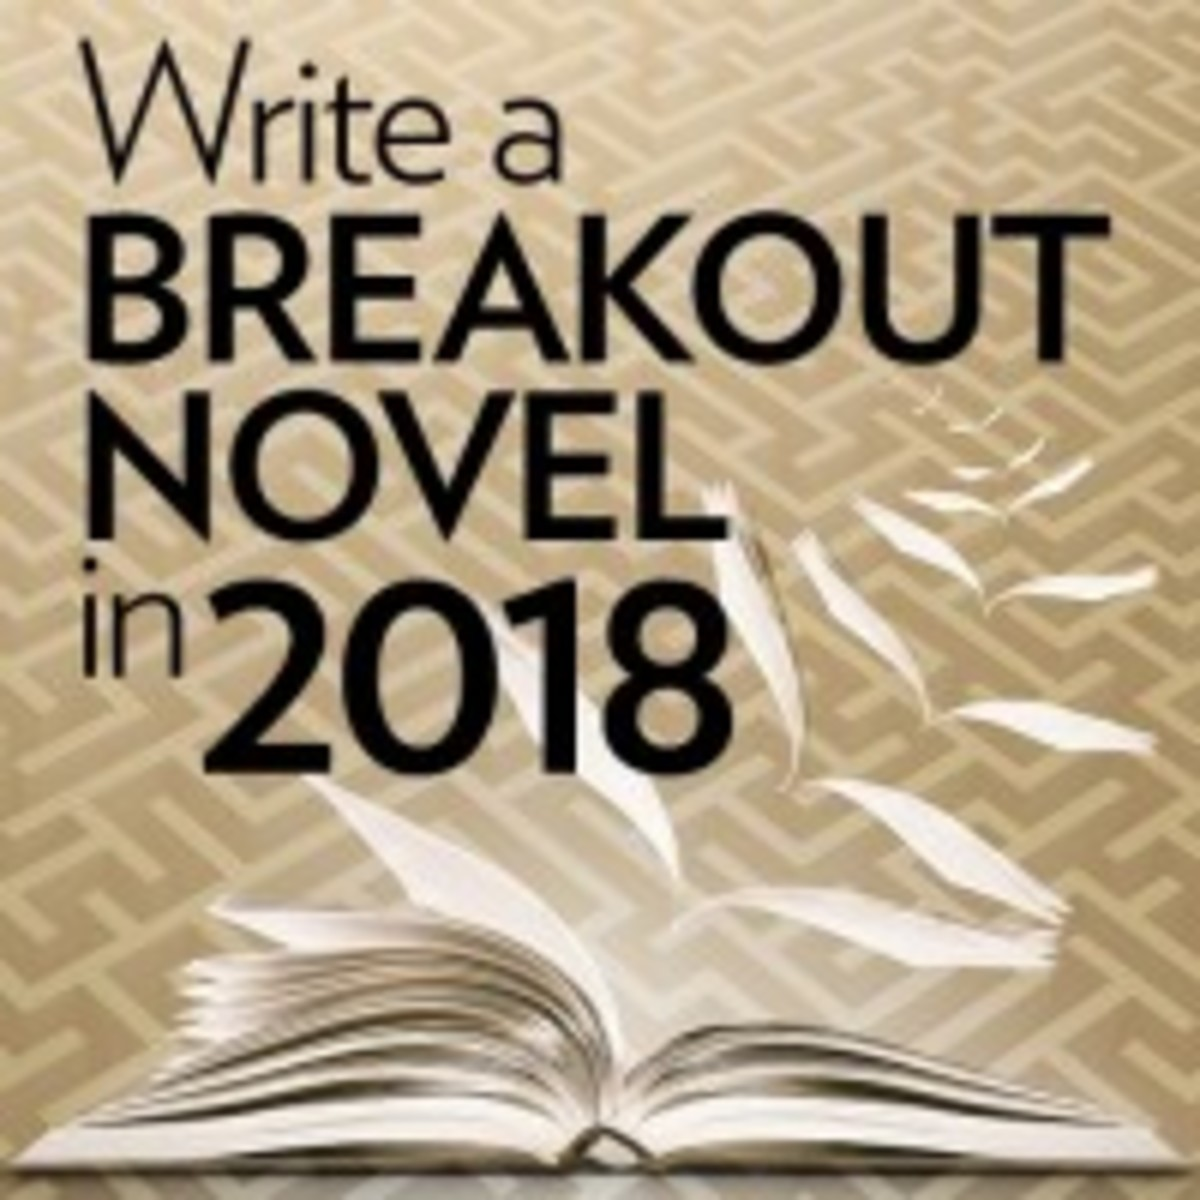 14 Resources to Help You Write A Breakout Novel in 2018